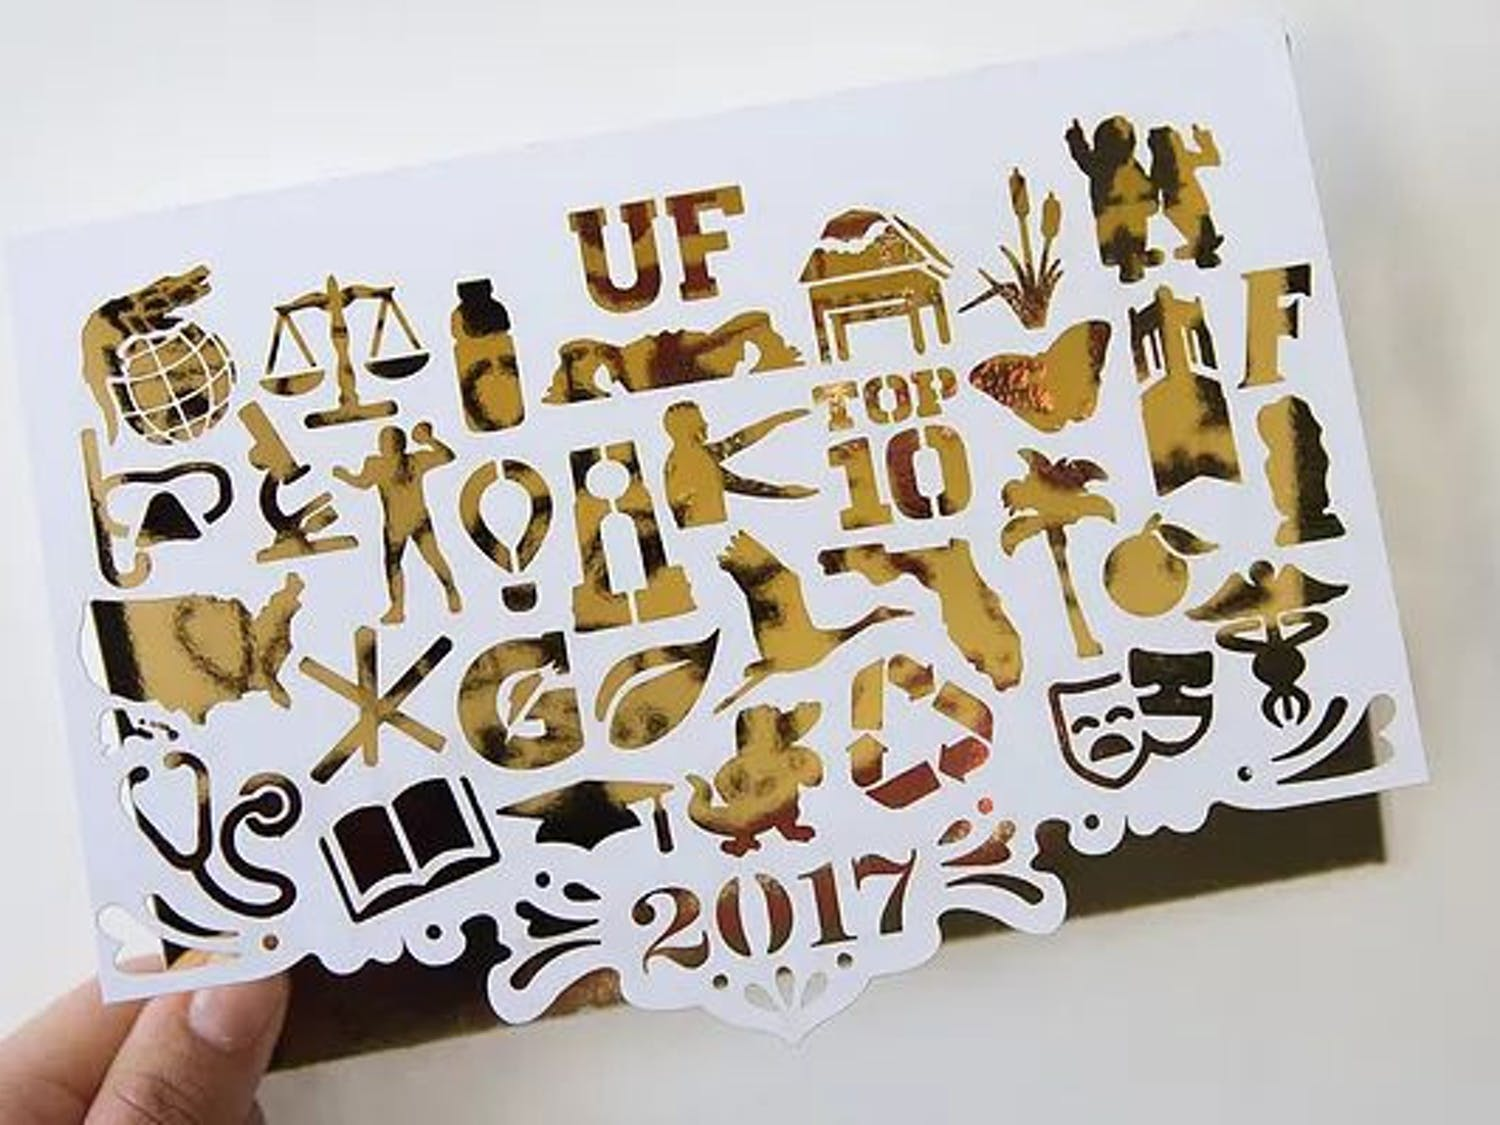 """The winning card features 32 icons, which represent categories that make UF unique, cut out on white paper over gold foil. The message inside the winning card reads """"Warmest Wishes,"""" which Jones described as a play on words about Florida's hot weather."""